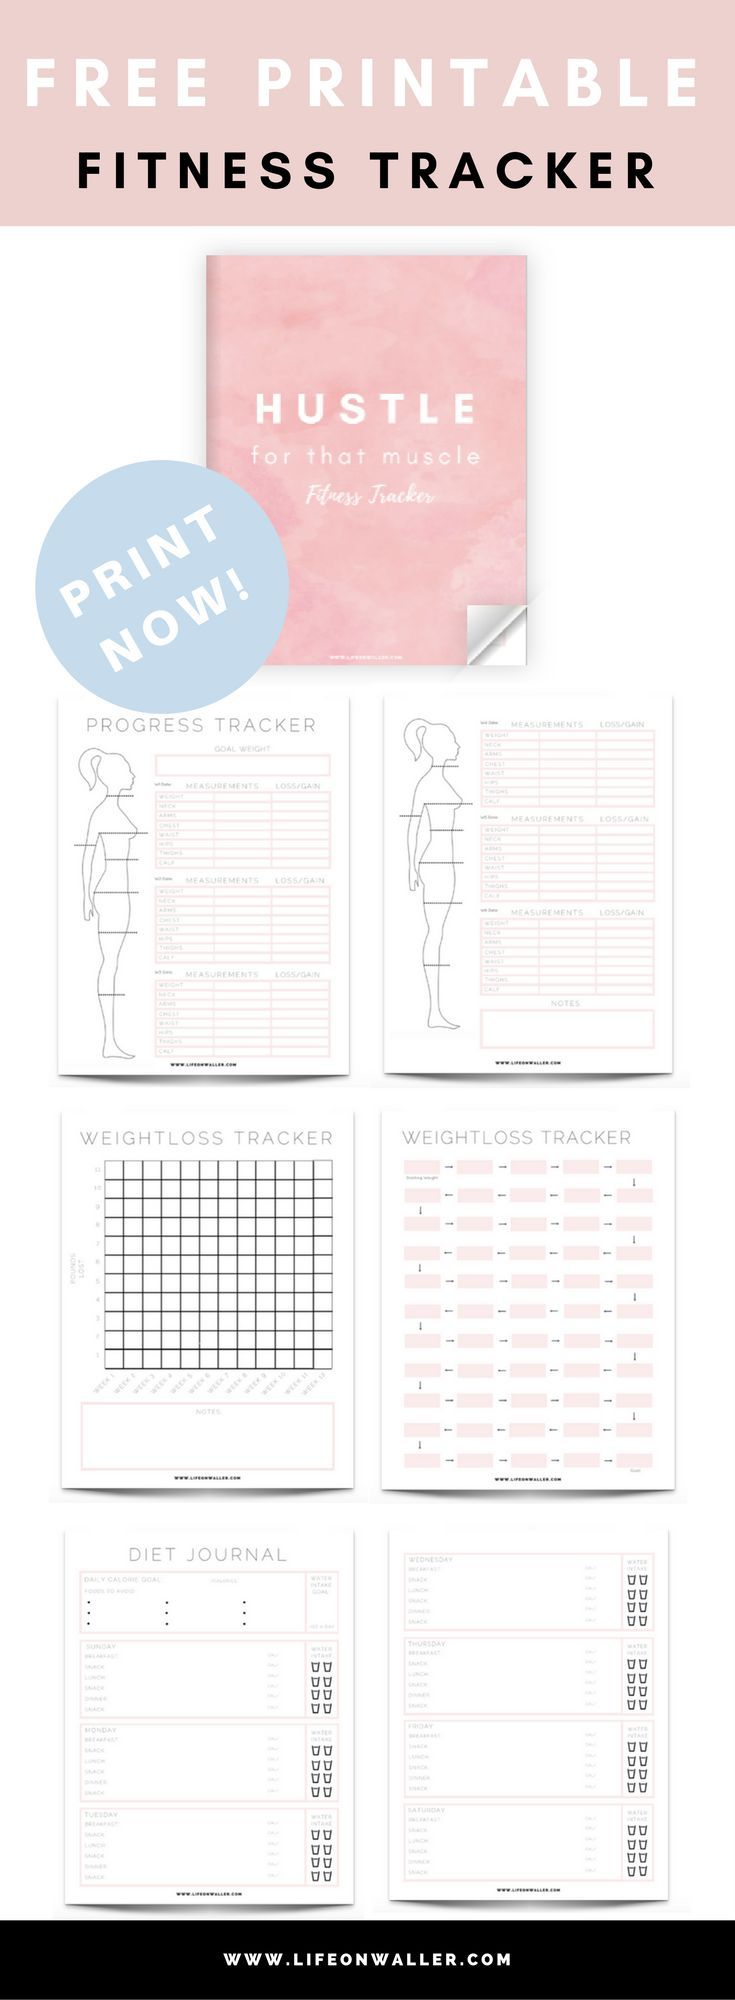 7 page free printable PDF fitness tracker, progress tracker, weight loss, and di…